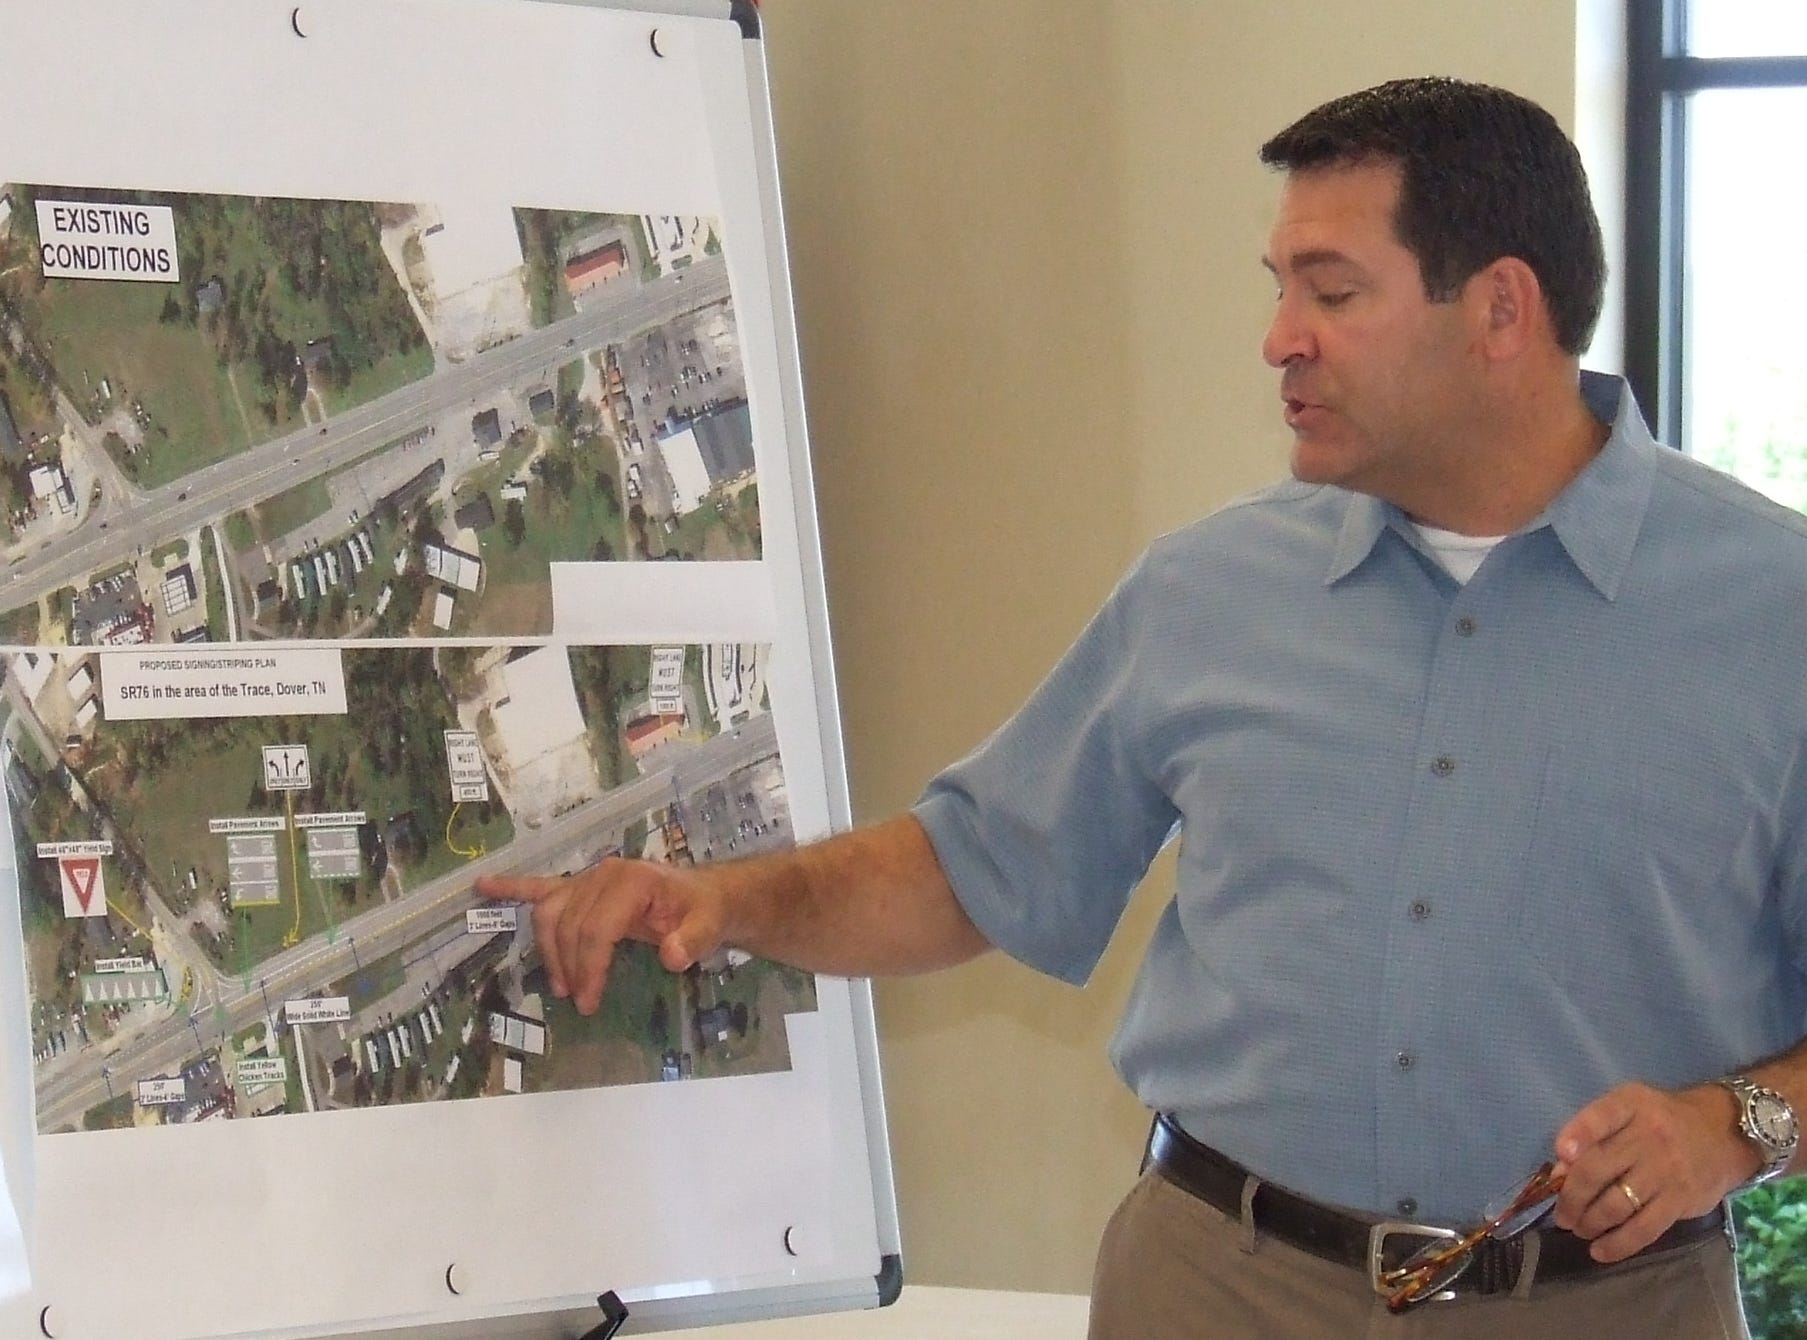 State Sen. Mark Green details the welcome changes coming to U.S. Highway 79 in the Trace area of Dover in May 2013.